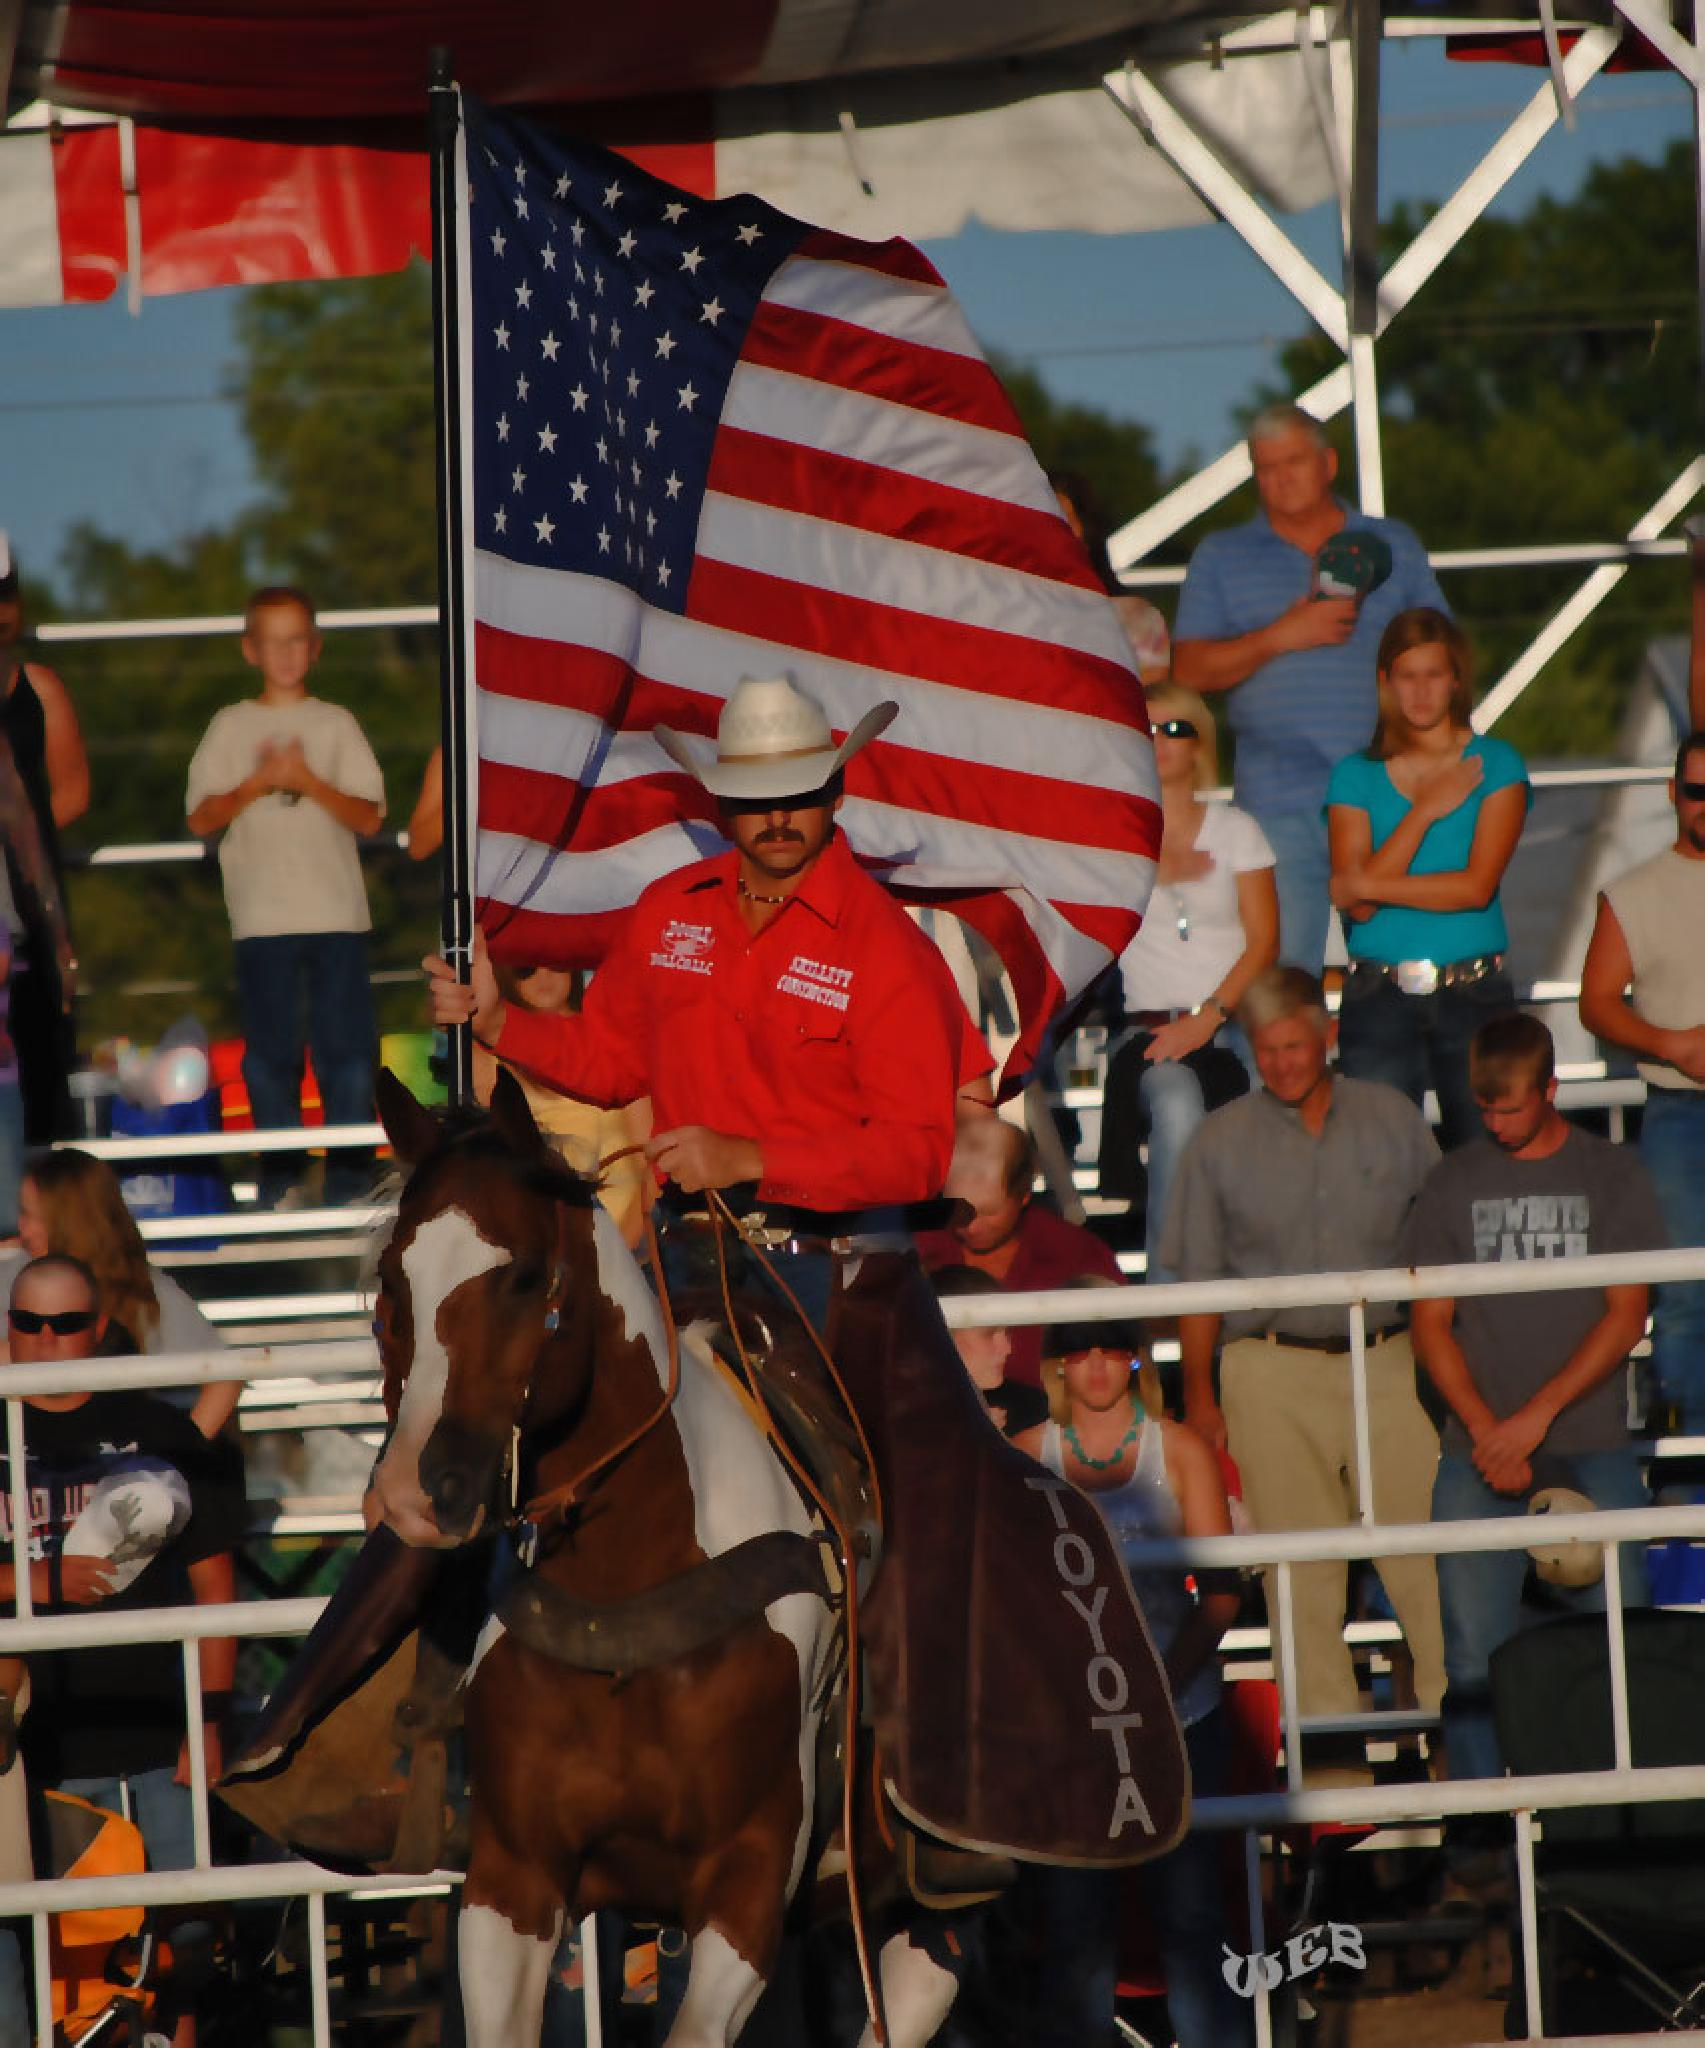 PRESENTING THE USA FLAG COWBOY STYLE by WEB426